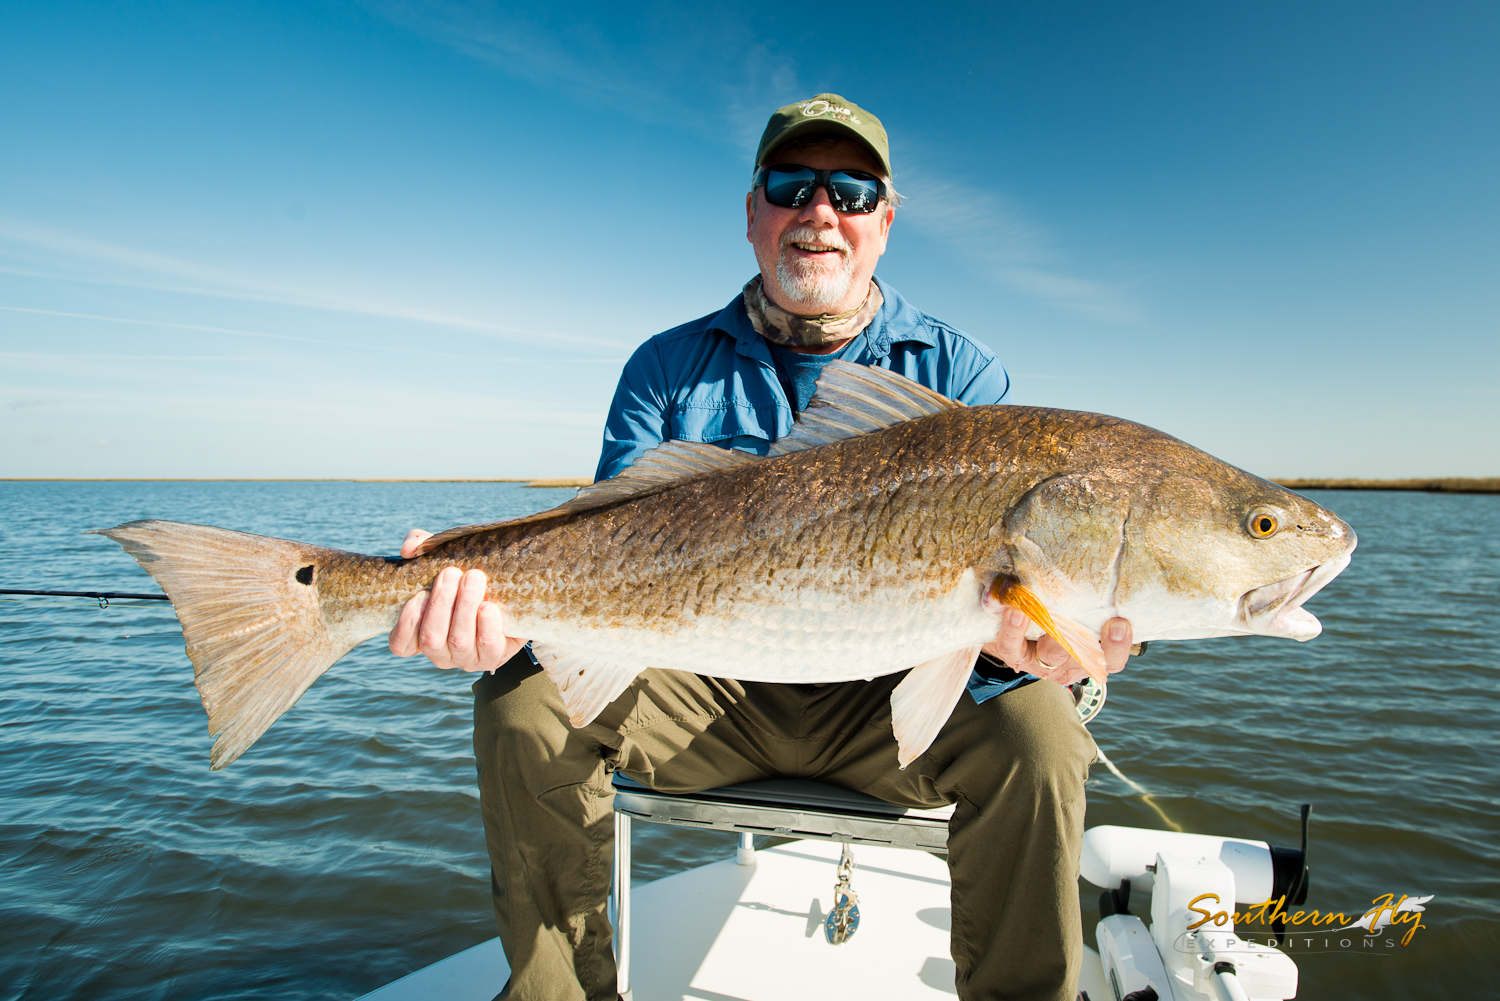 Redfish Fly Fishing Vacations New Orleans Southern Fly Expeditions